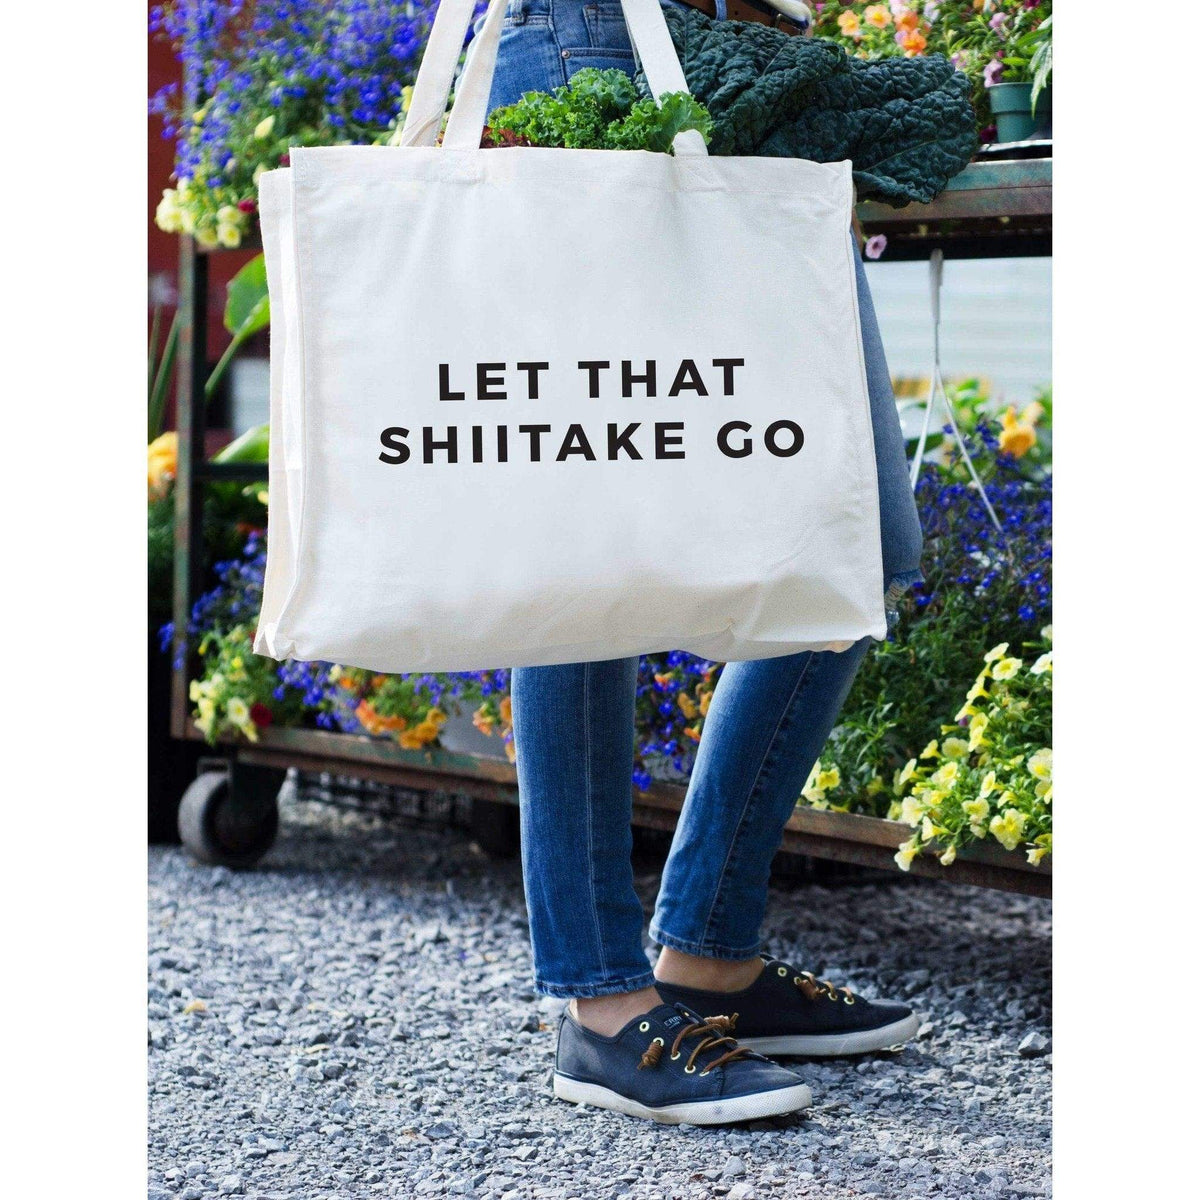 Let That Shiitake Go Tote by 24 Carrot Co.